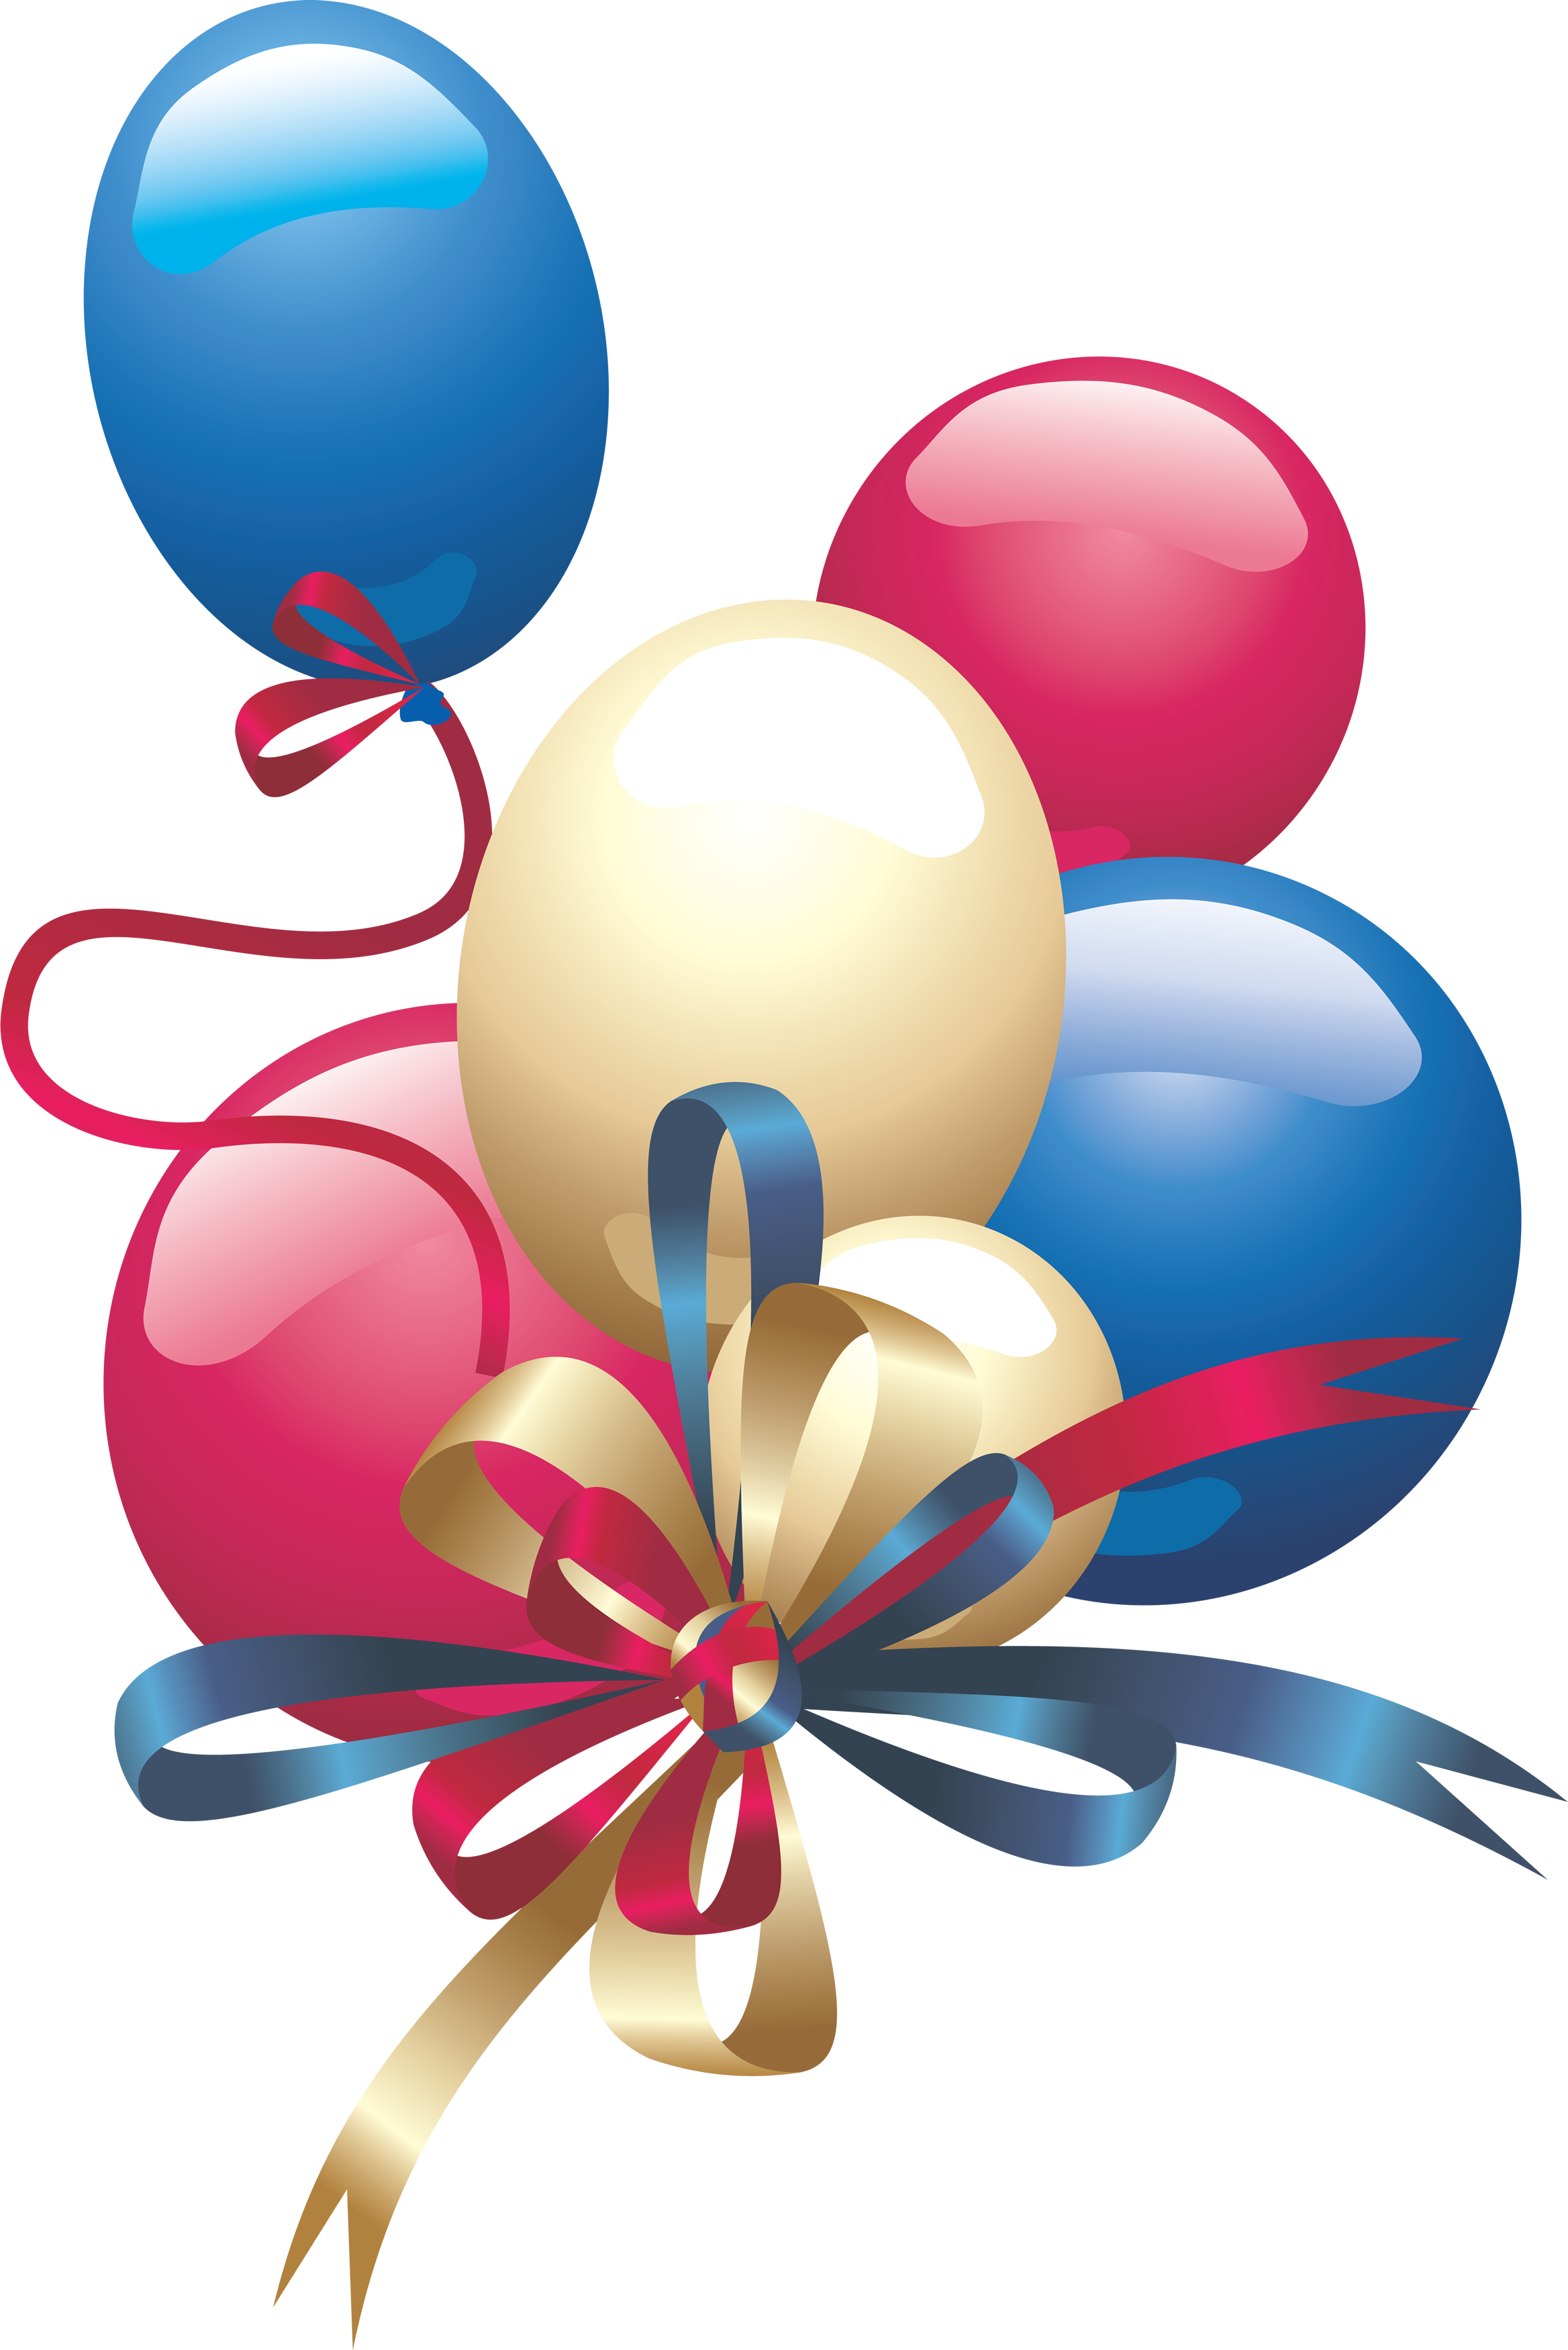 2336x3501 Balloon PNG images, free picture download with transparency